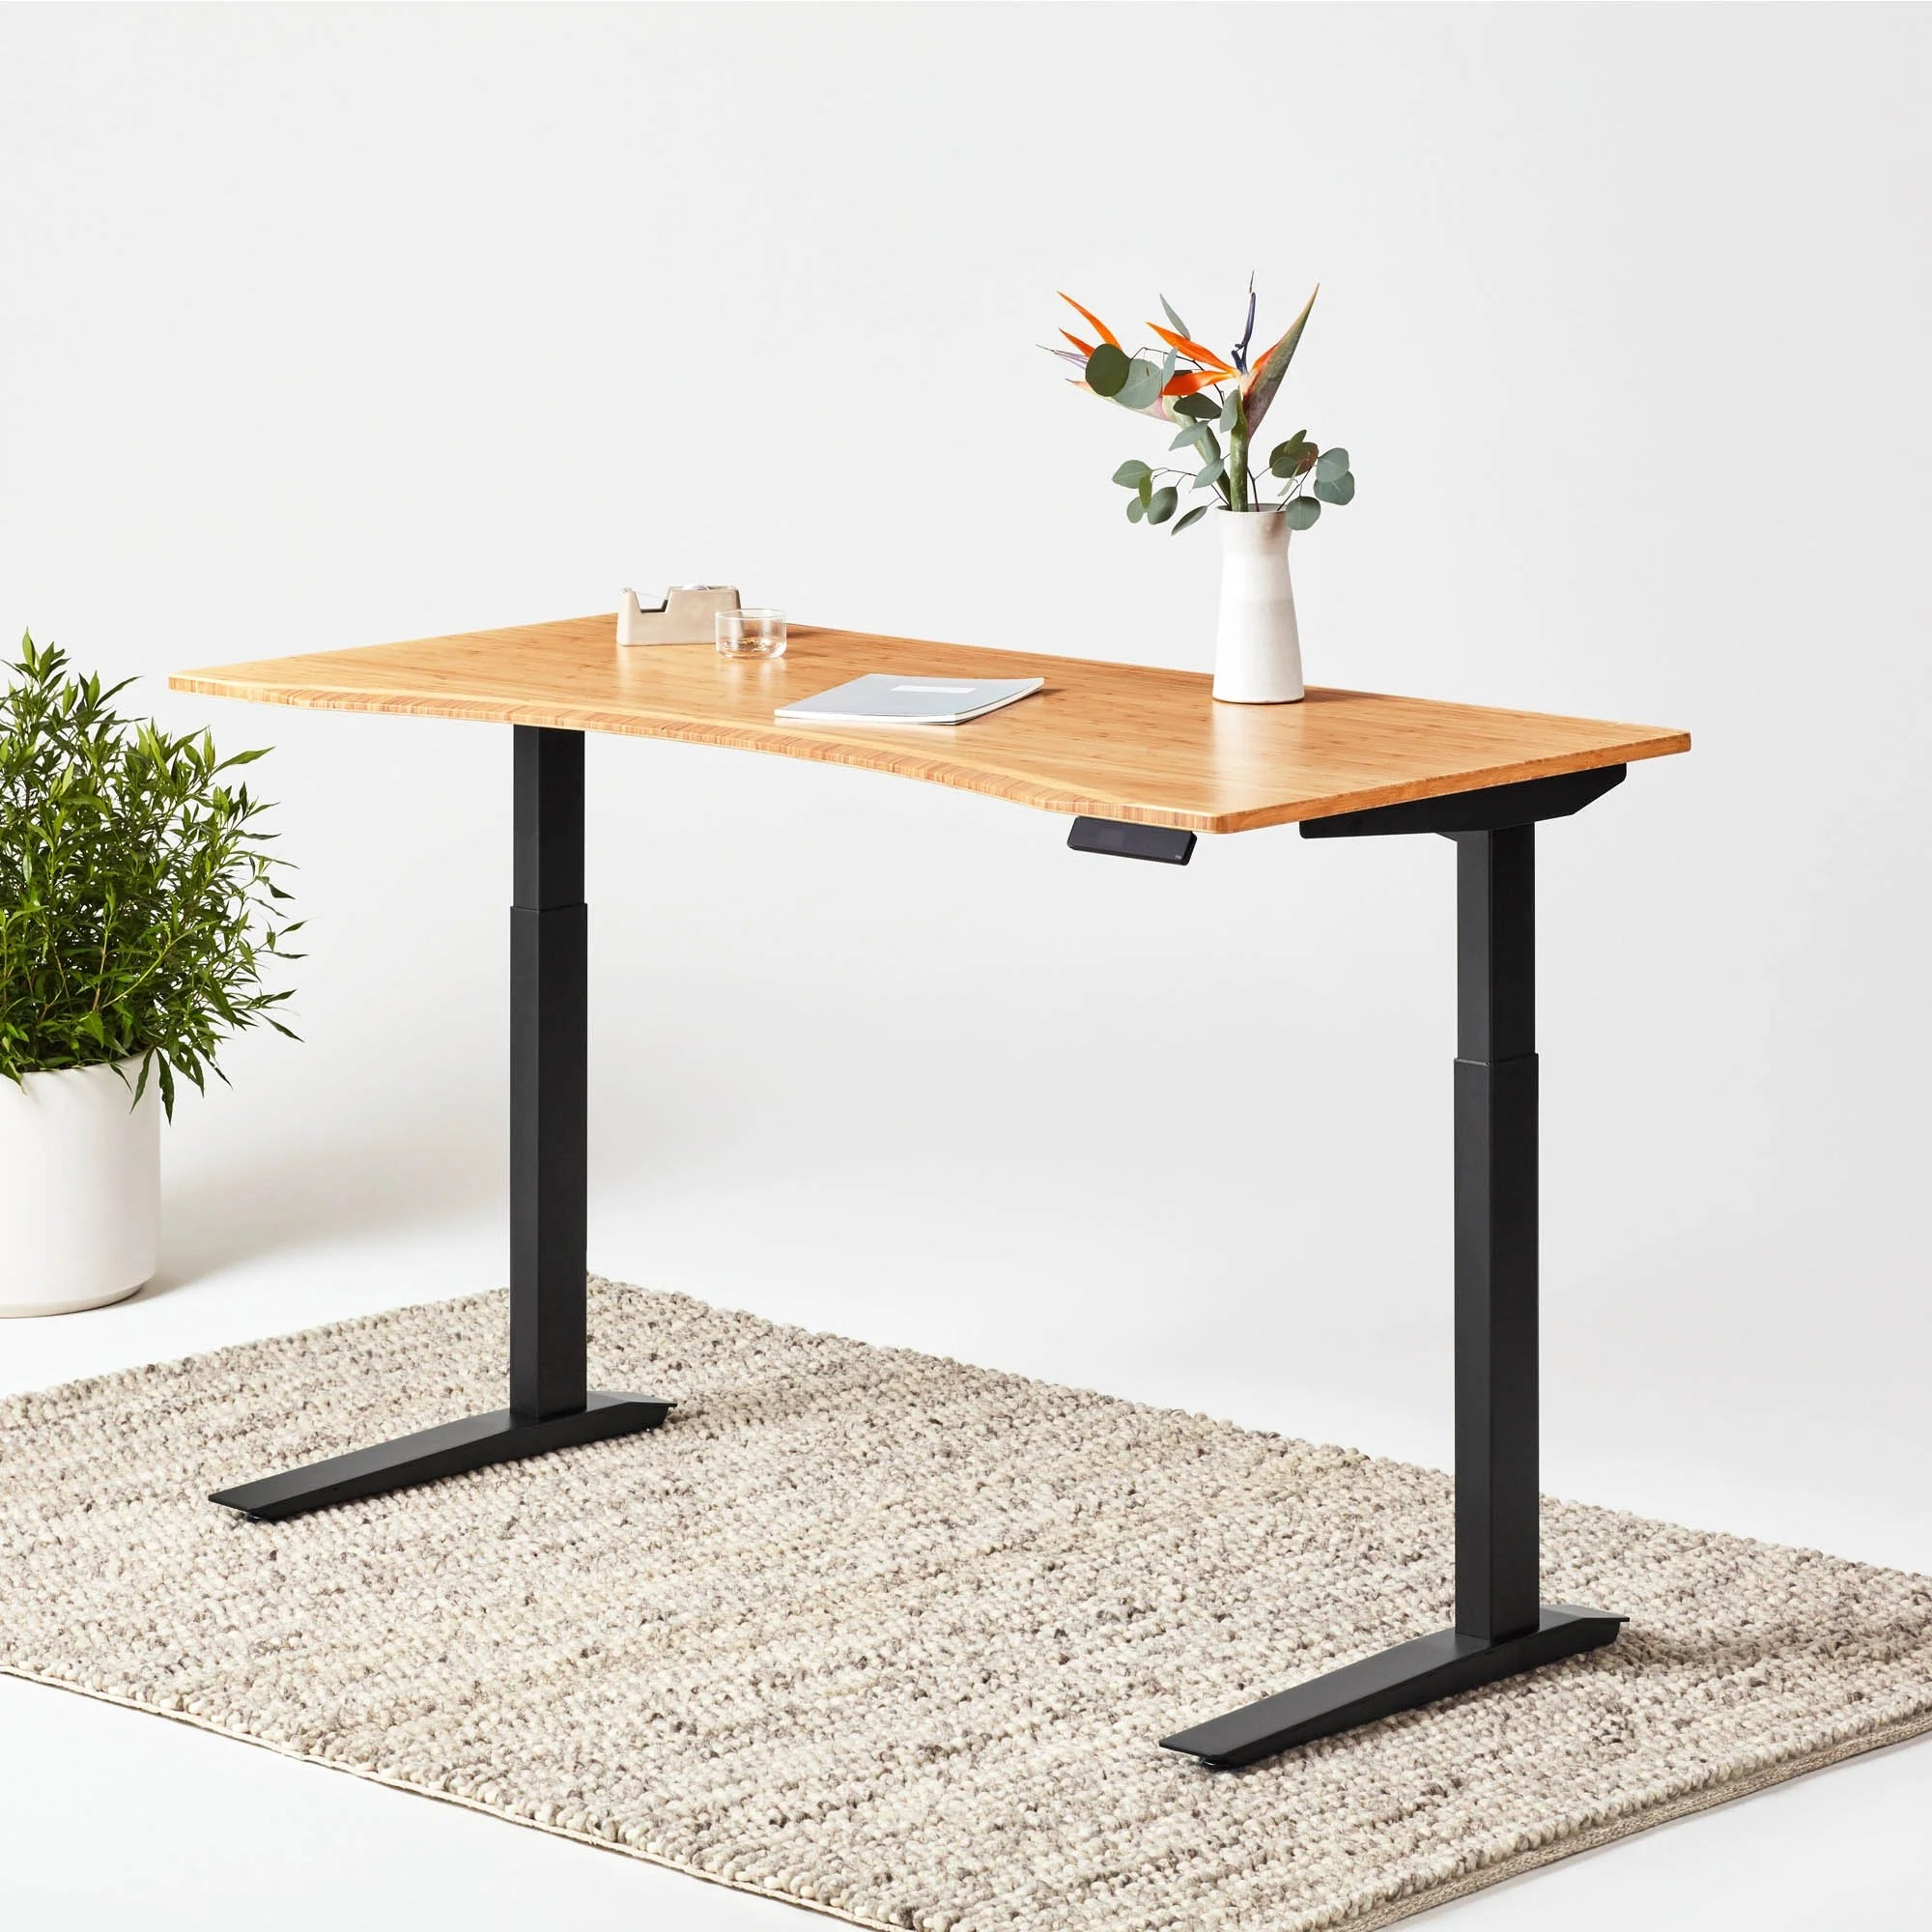 Jarvis Bamboo Standing Desk The 1 Rated Desk Fully